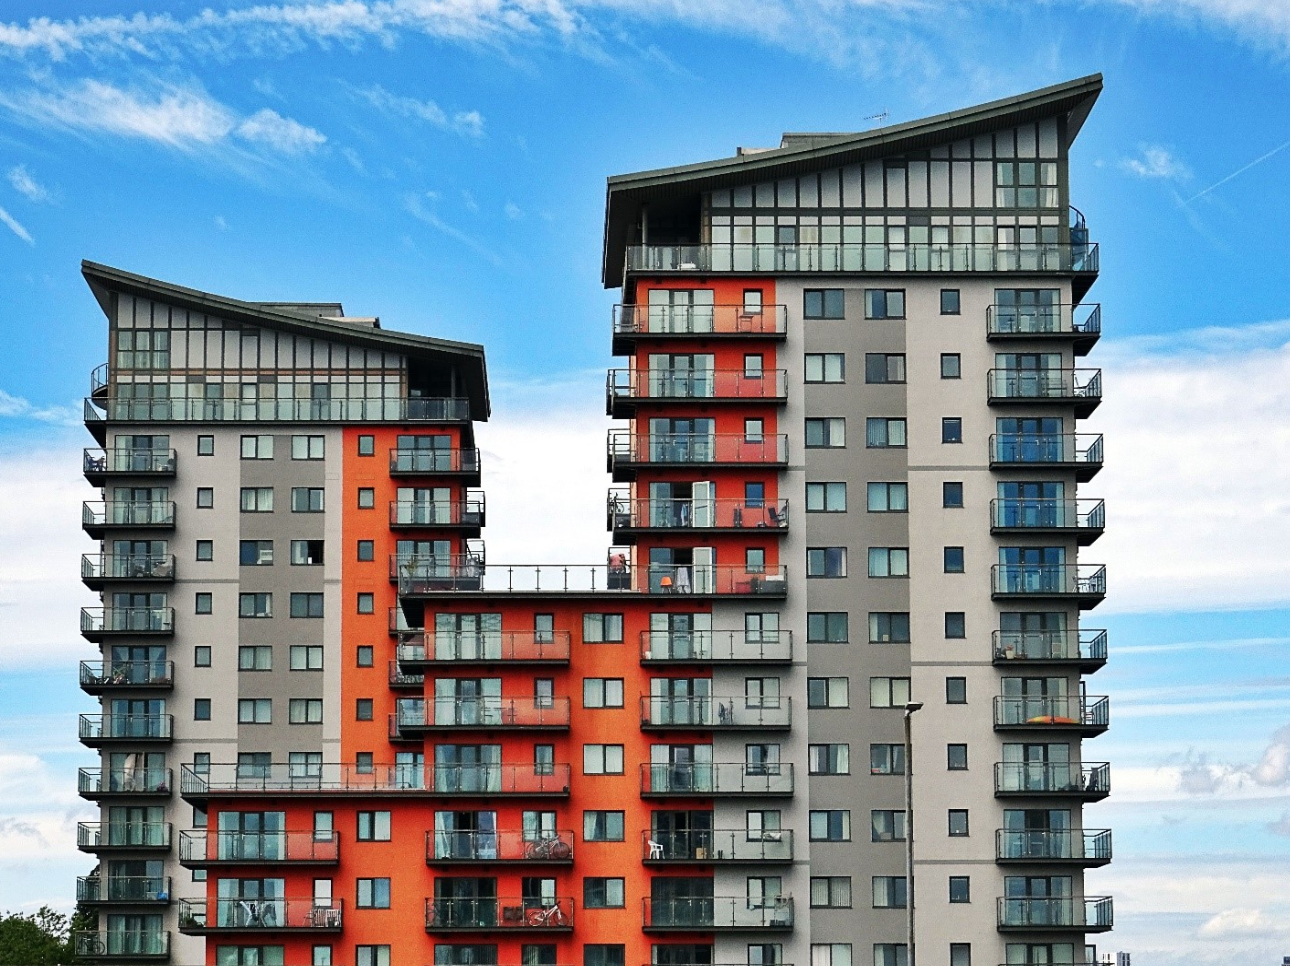 Condos Vs Apartments- What is the REAL difference between the two?